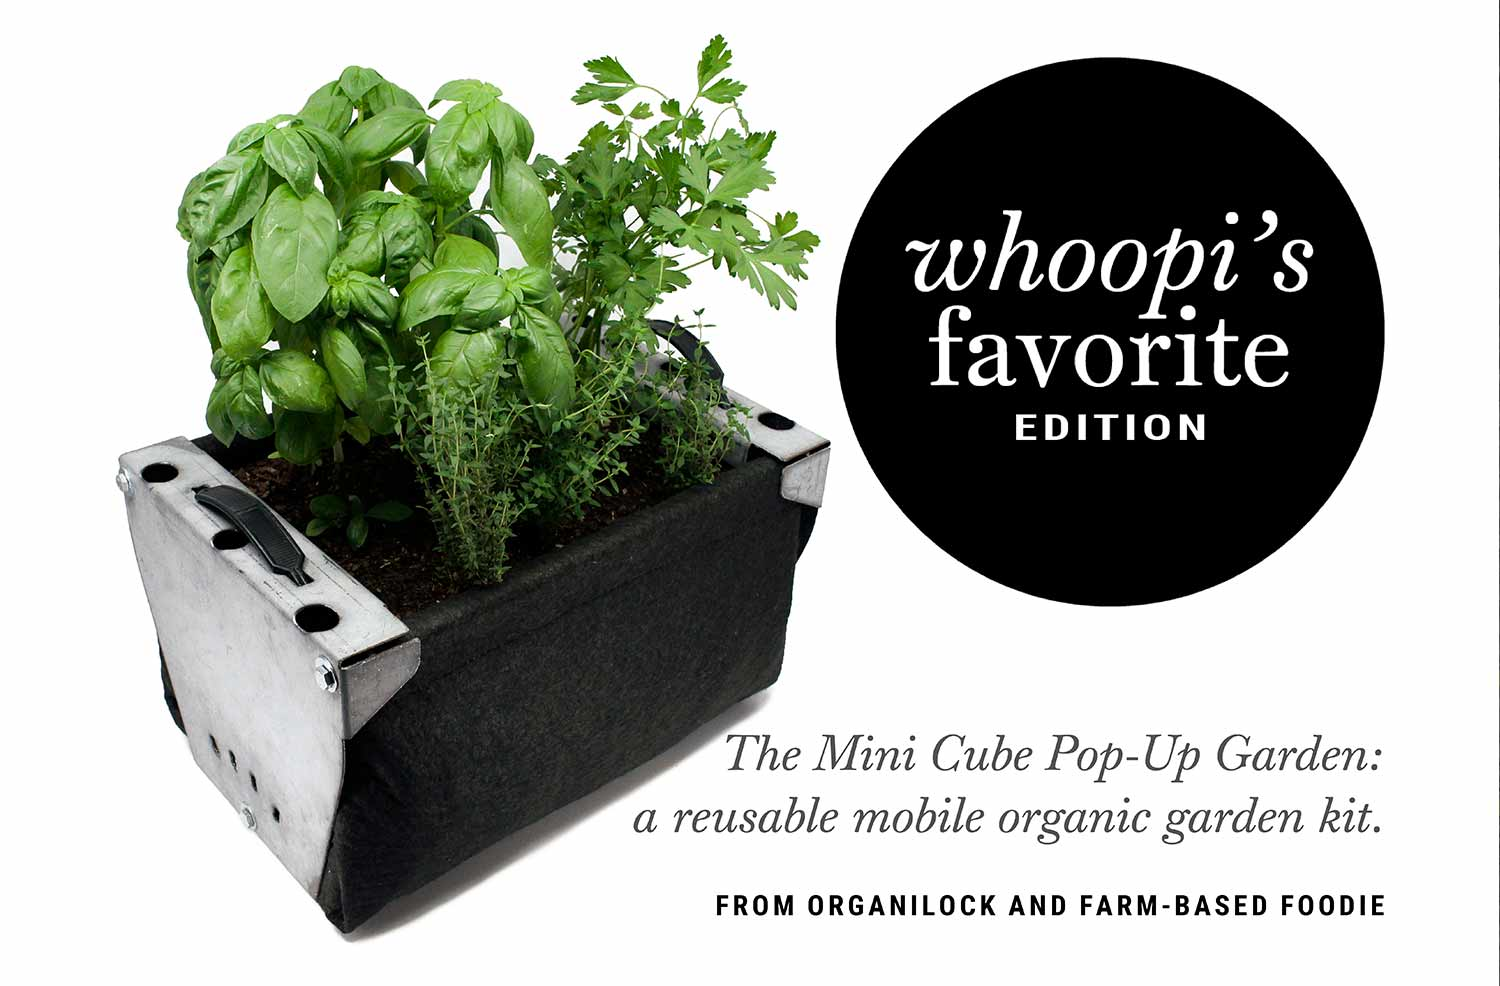 Mini Cube Pop-Up Garden  |  Whoopi's Favorite Edition